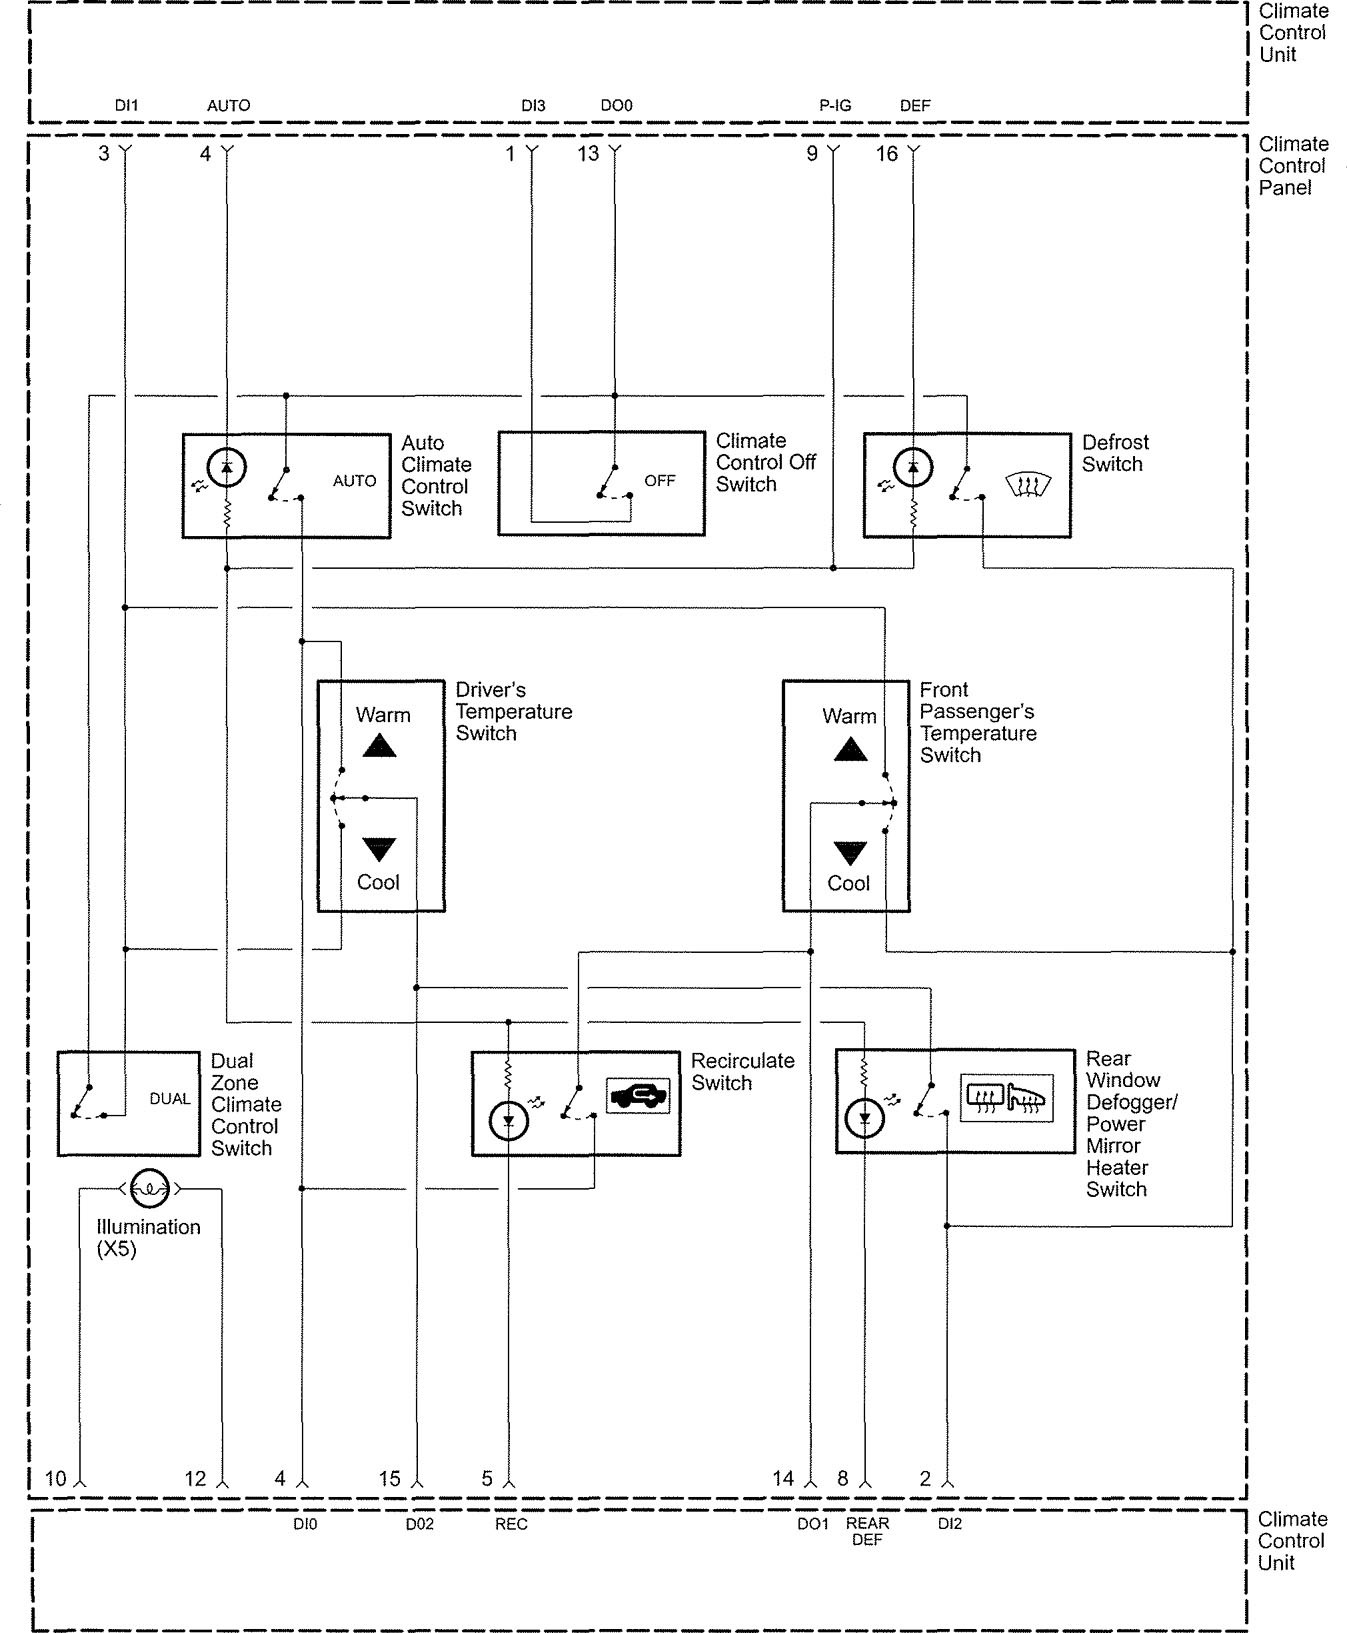 acura rl wiring diagram hvac controls v1 3 2005 acura rl (2005) wiring diagrams hvac controls carknowledge hvac control wiring diagram at gsmx.co